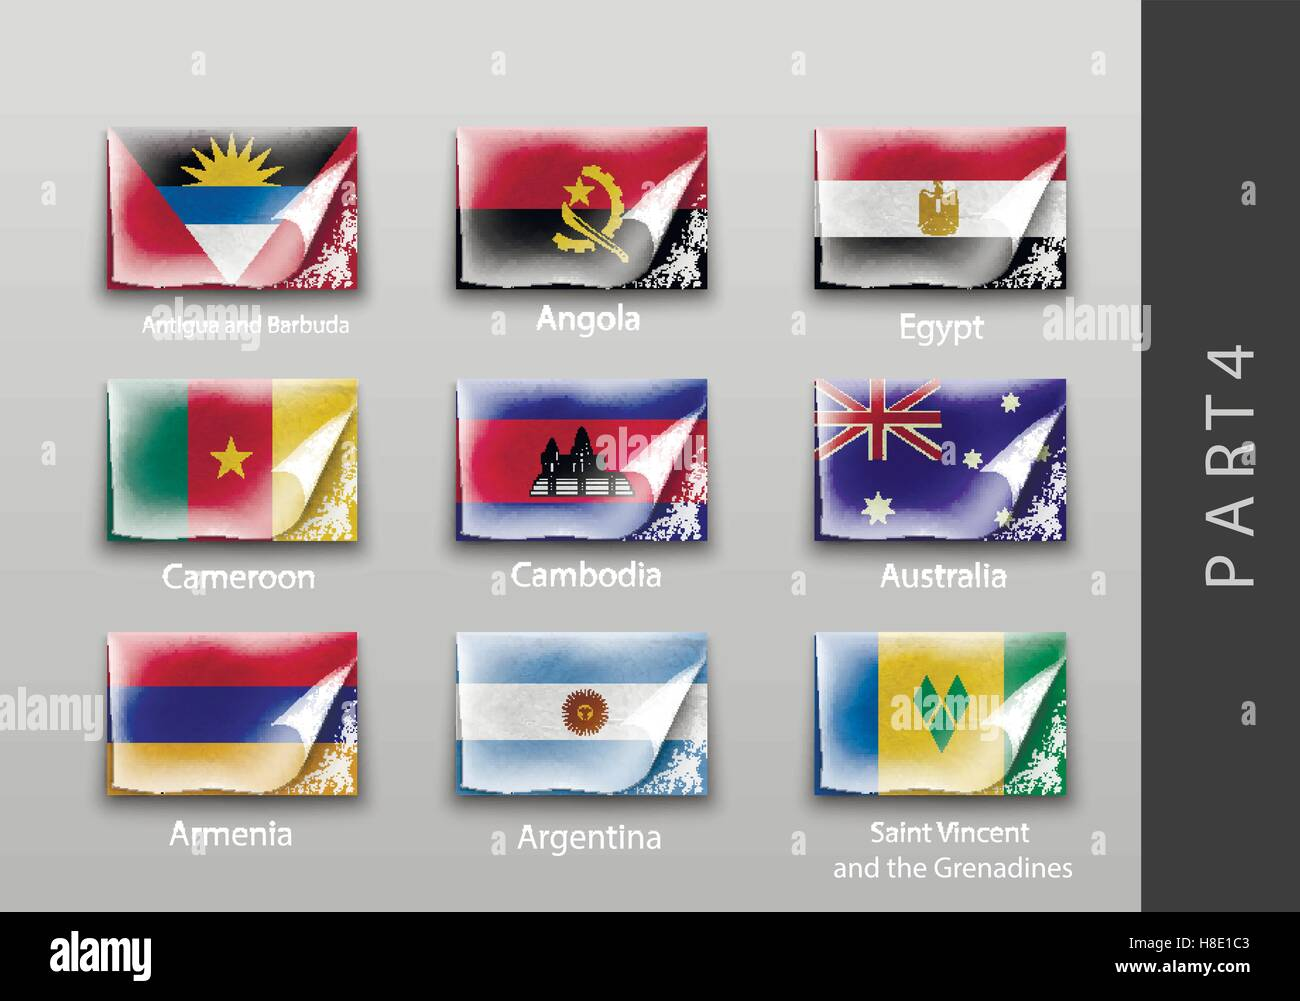 Flags in the form of states with shadows - Stock Image